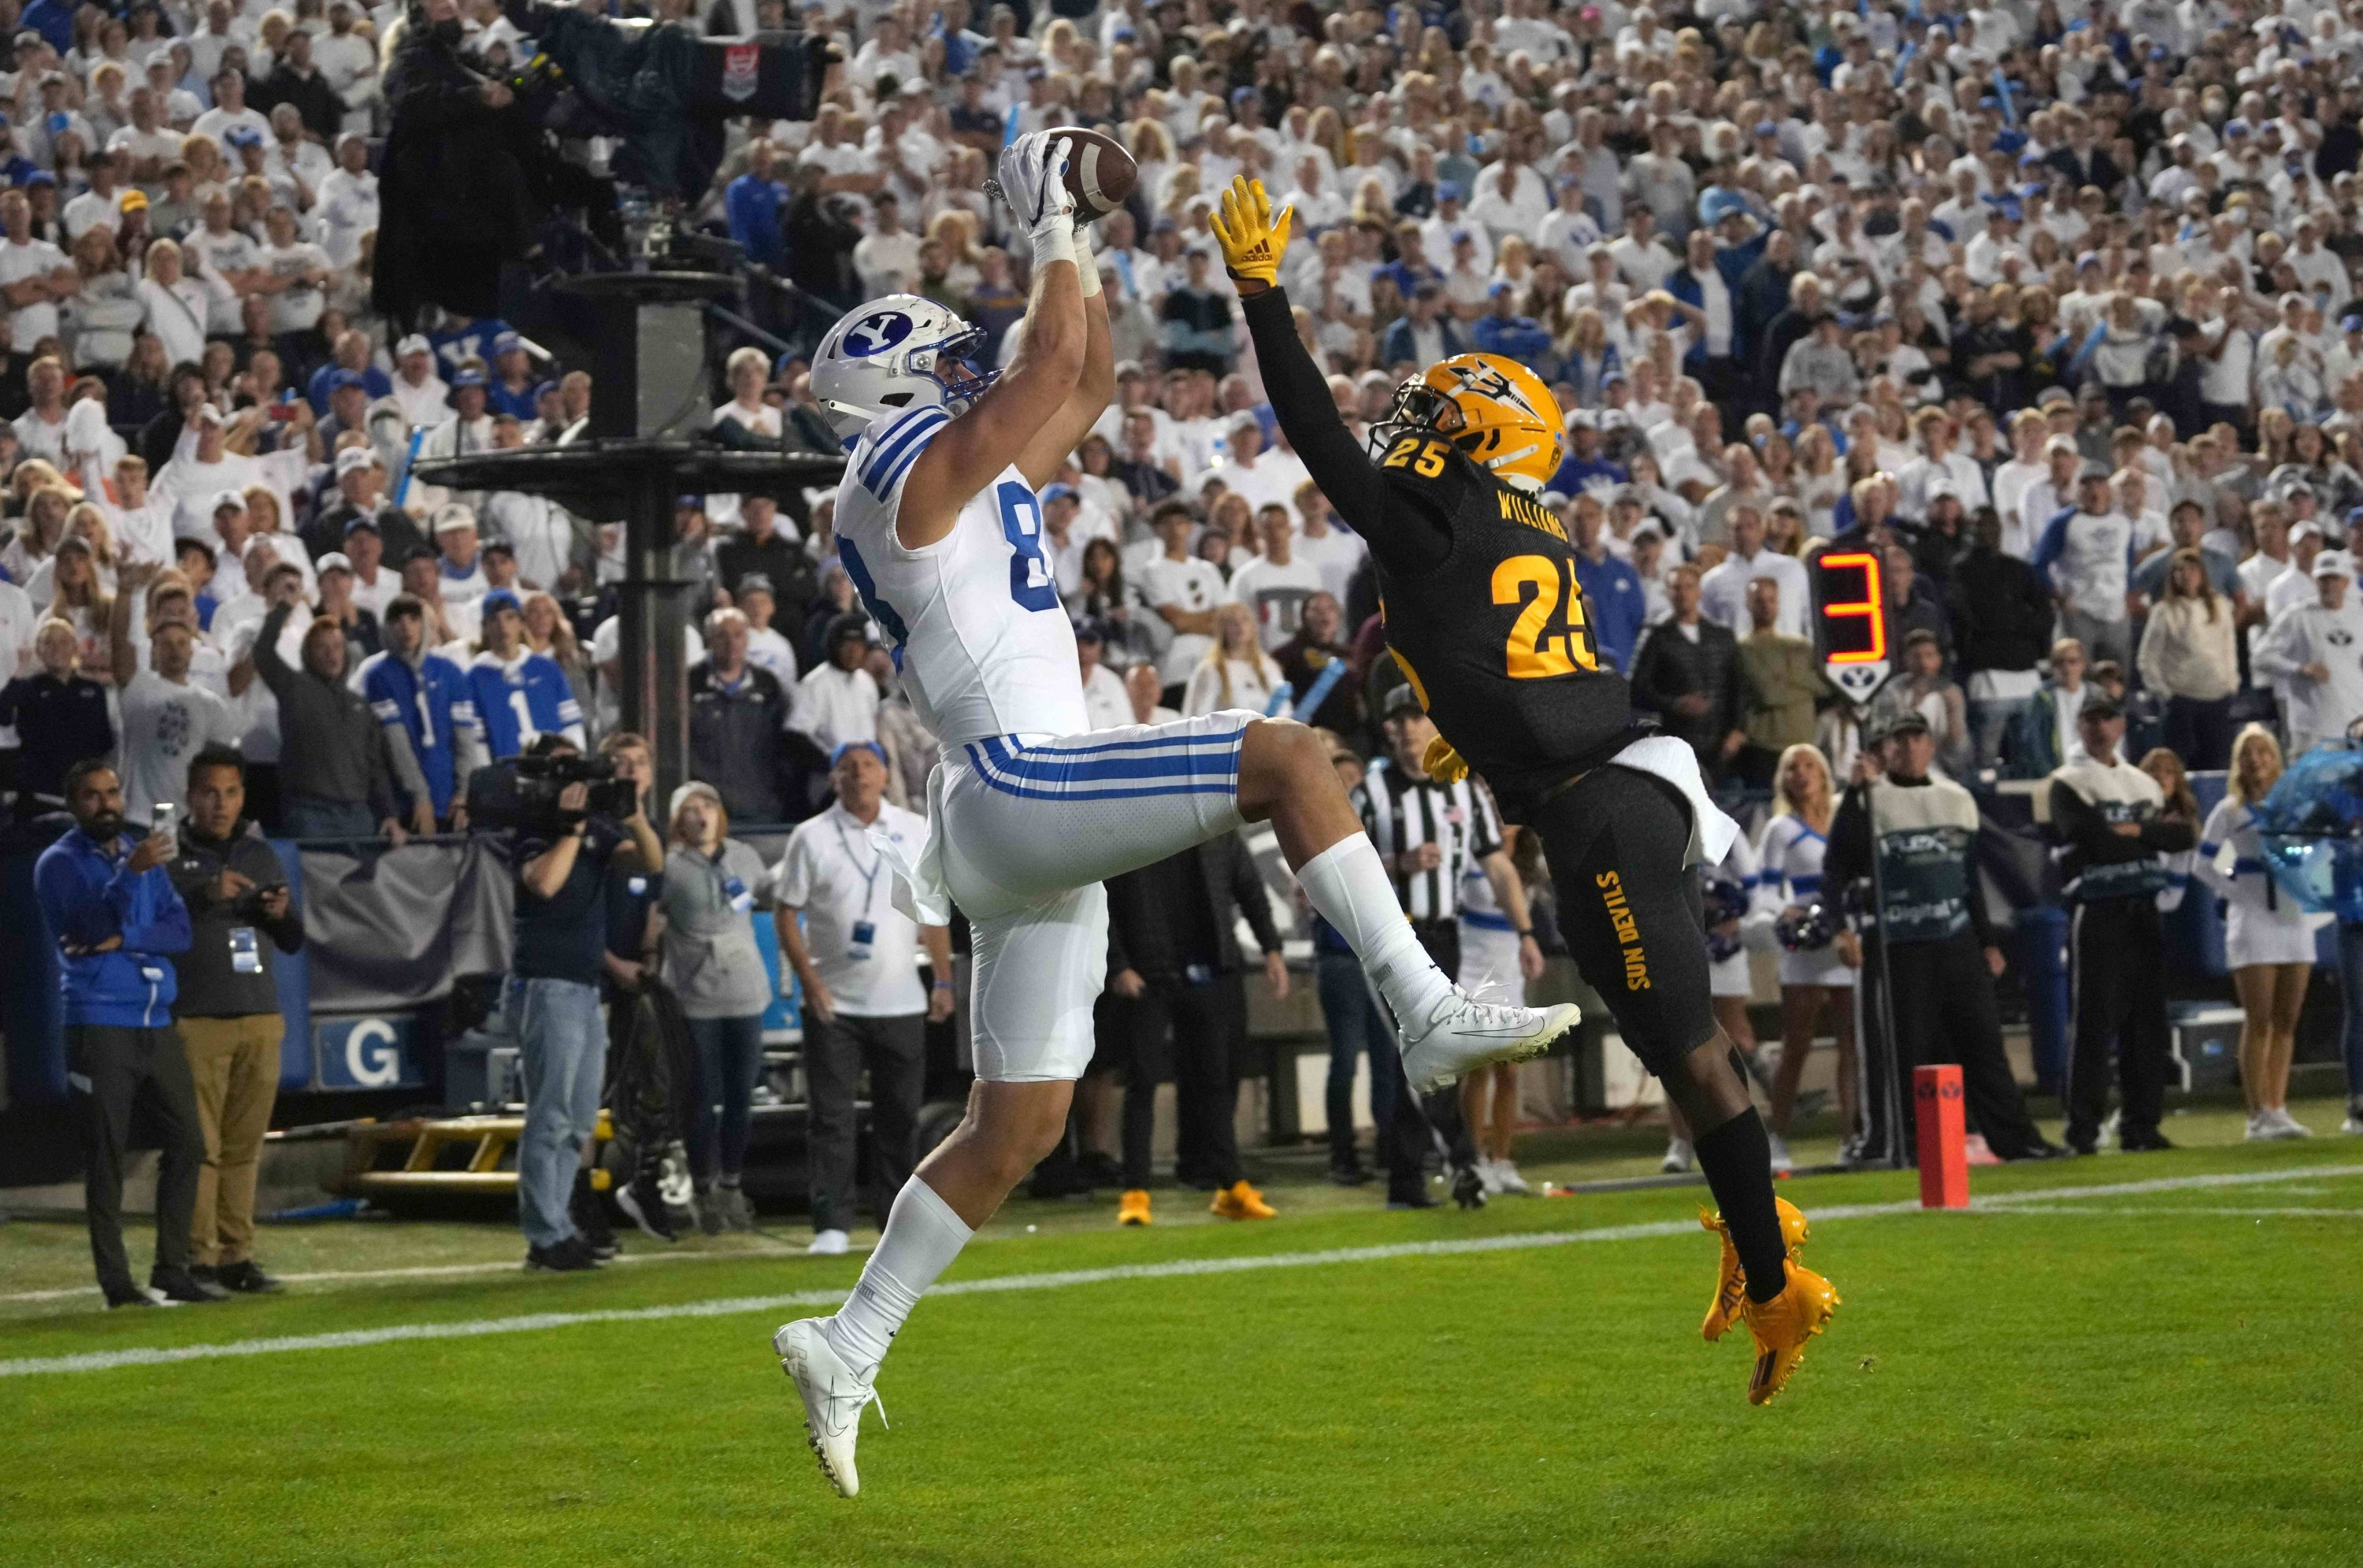 BYU Cougars tight end Isaac Rex (83) is defended by Arizona State Sun Devils defensive back Macen Williams (25) on a 3-yard touchdown reception in the fourth quarter at LaVell Edwards Stadium, Provo, Utah, U.S., Sept. 18, 2021. (Kirby Lee-USA TODAY Sports via Reuters)